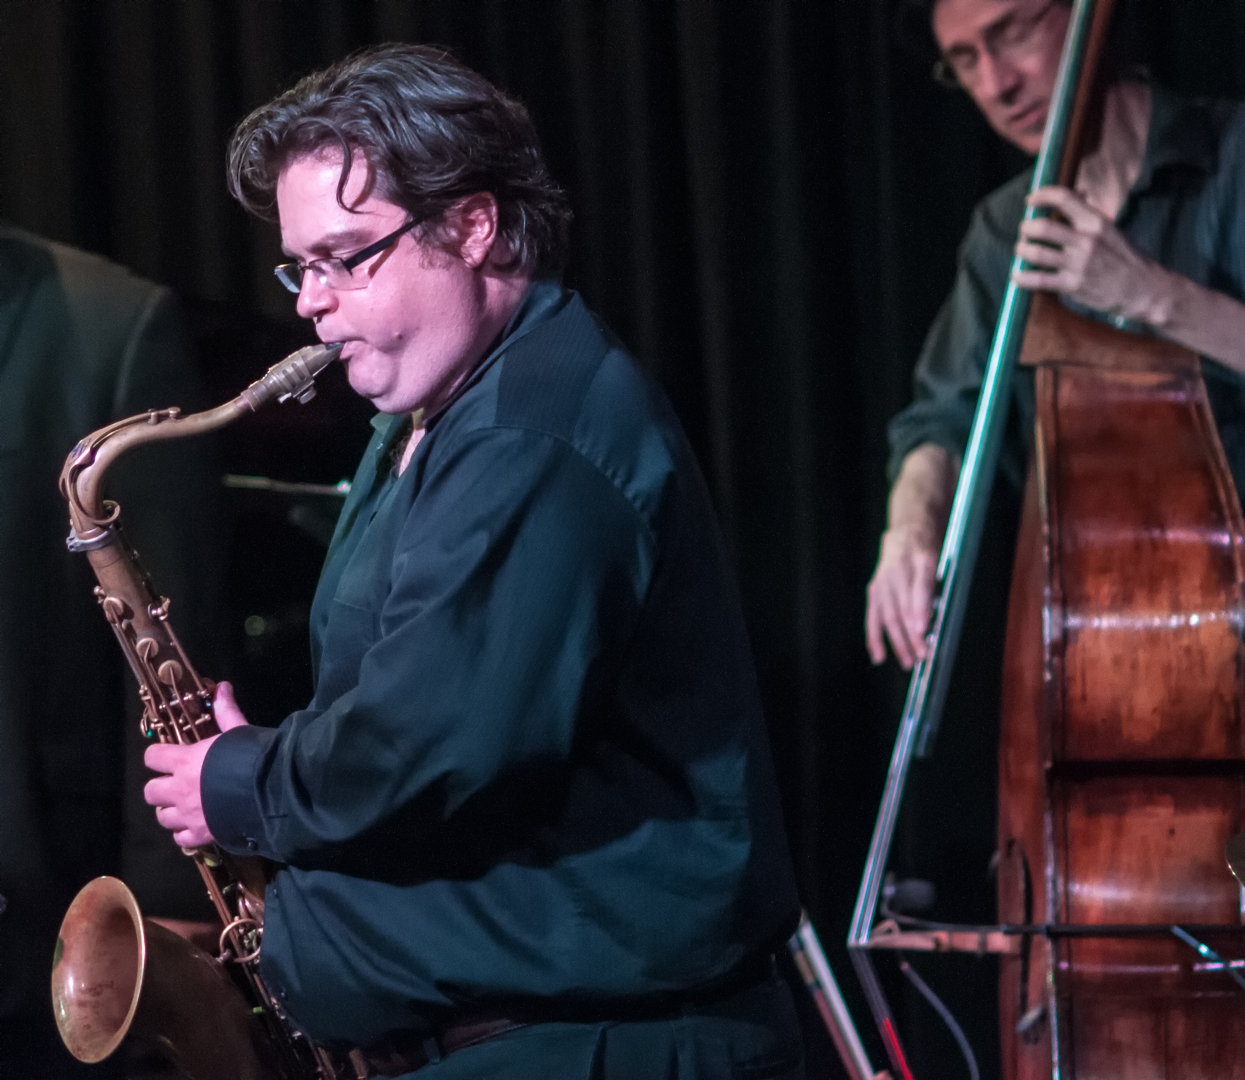 Andrew gross and ted 't'bone' sistrunk with dmitri matheny group jazz noir project at the nash in phoenix, arizona